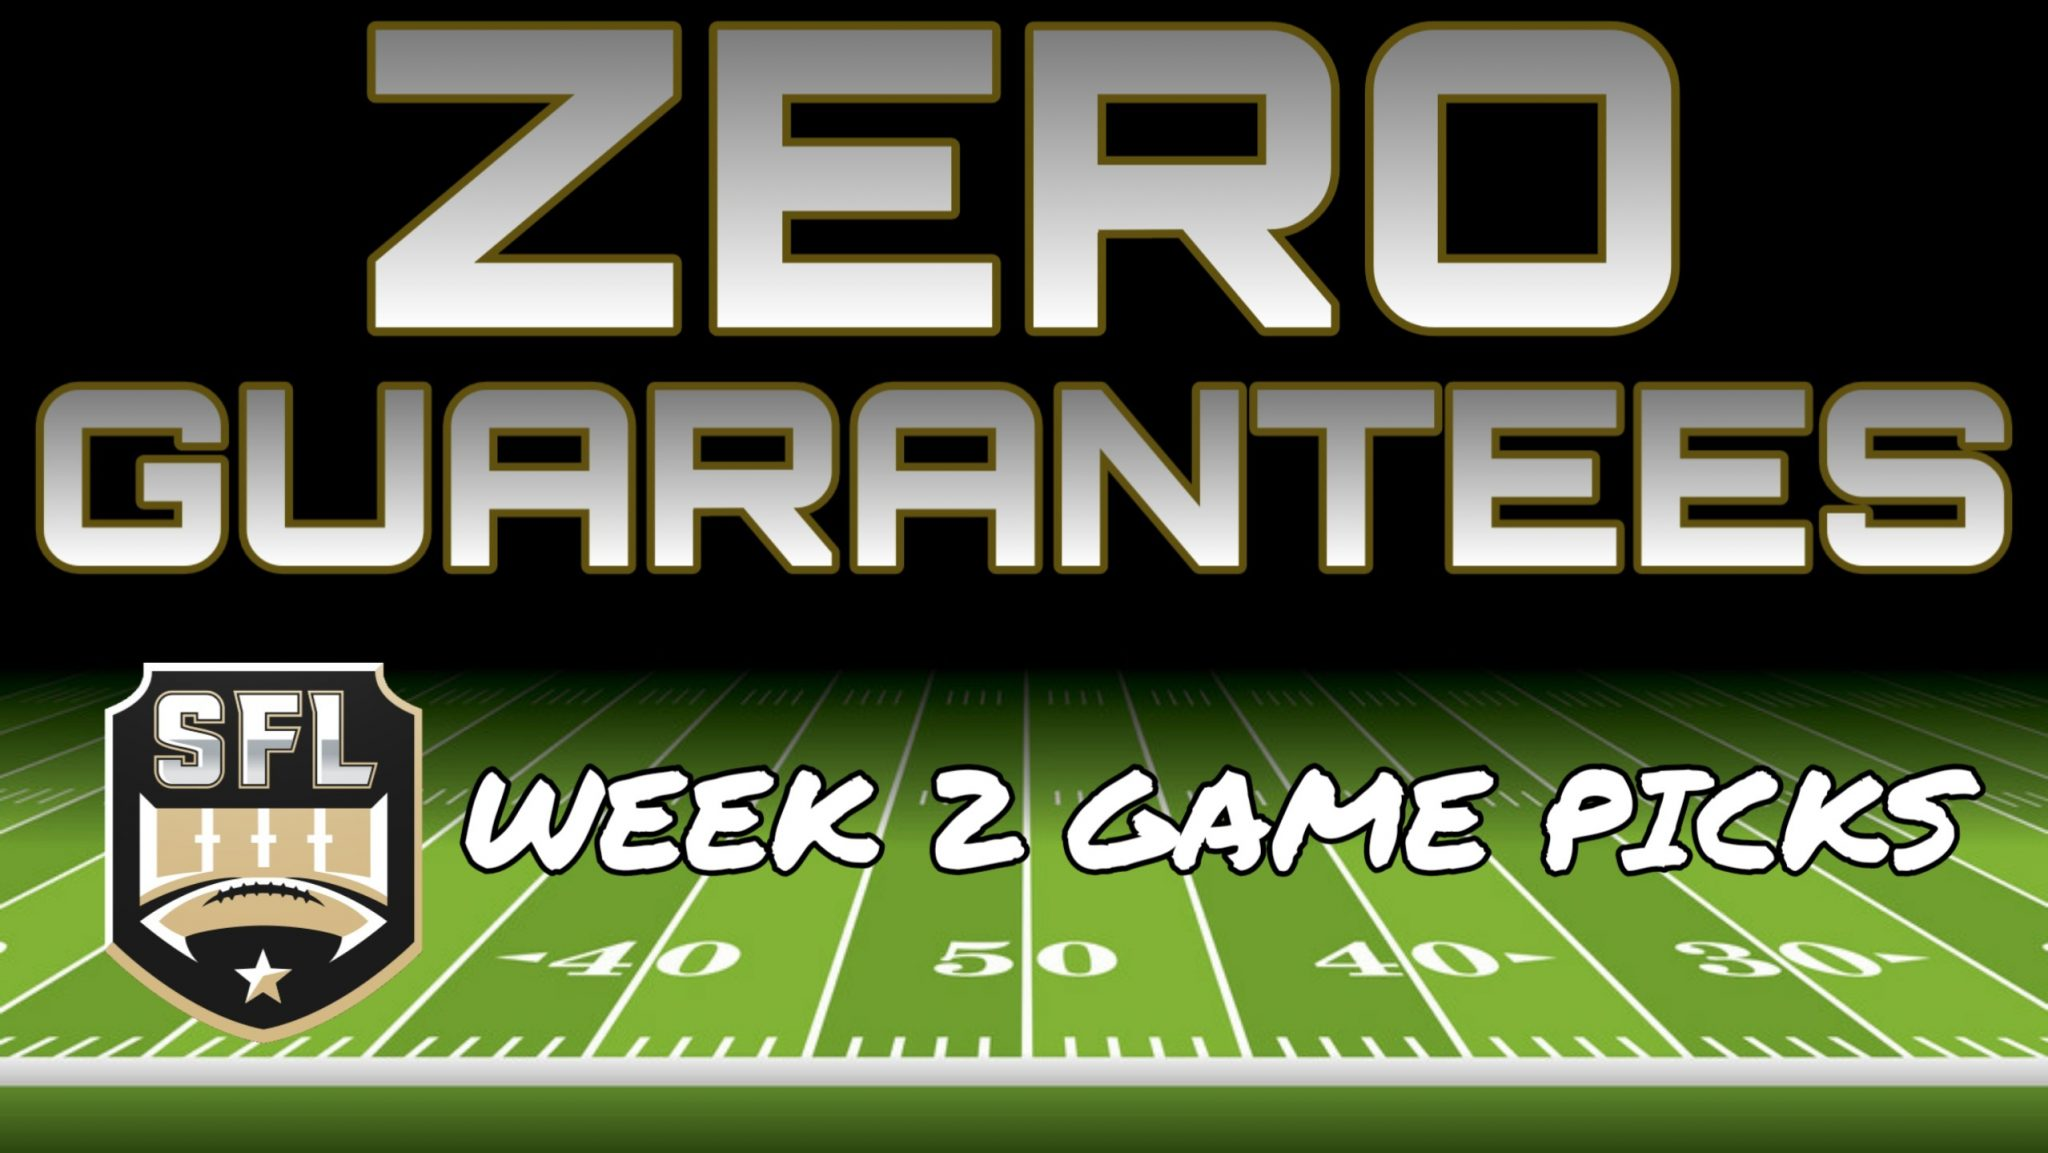 Zero Guarantees: Season 14, Week 2